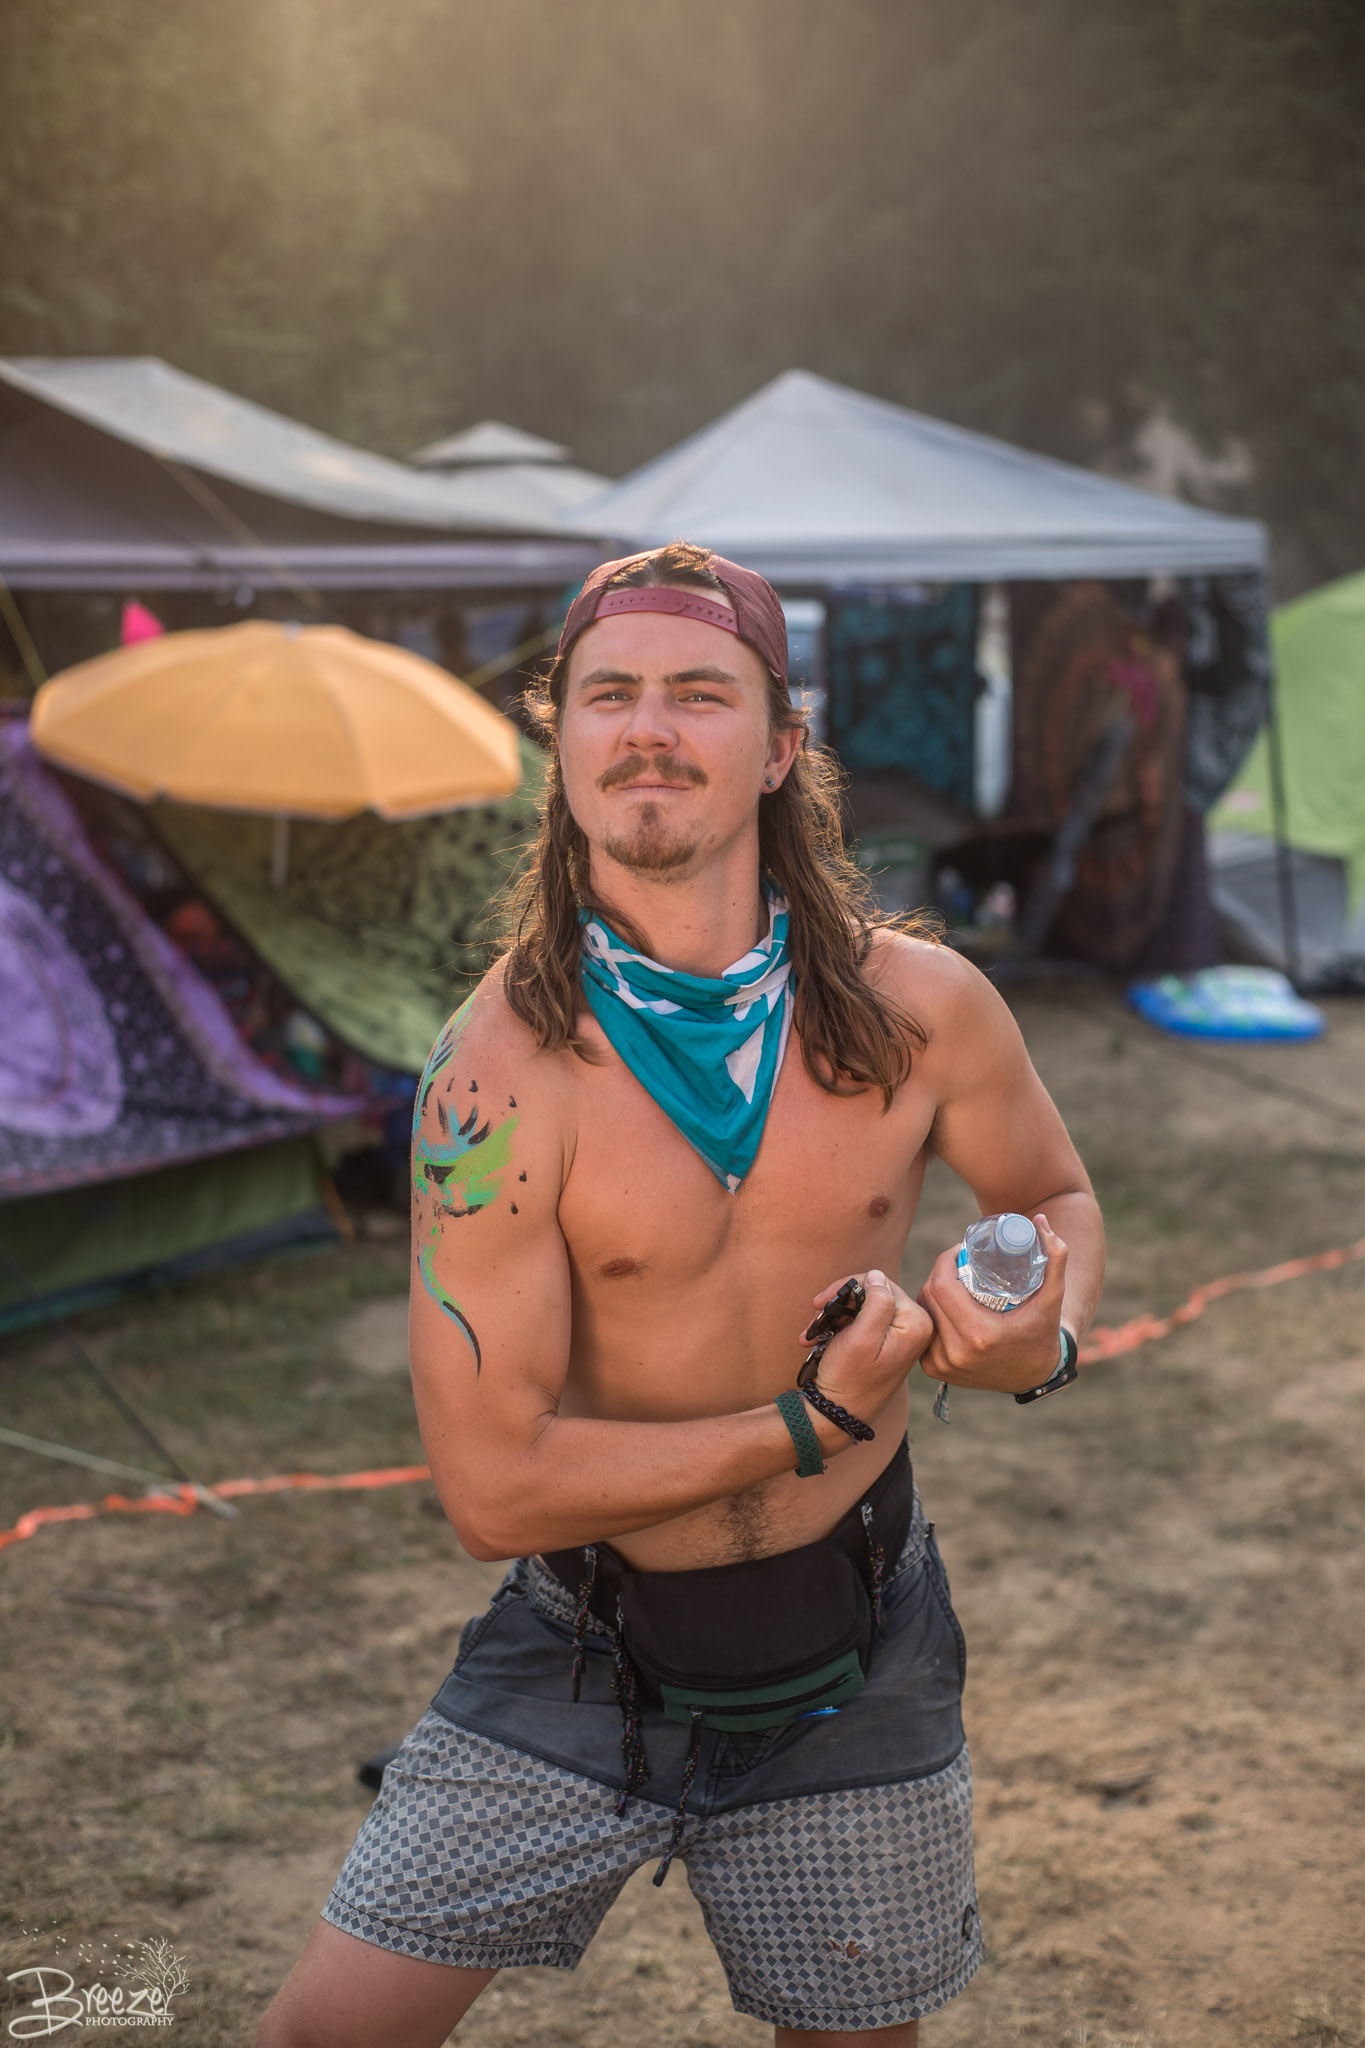 Brie'Ana Breeze Photography & Media - Shambhala 2018-0610.jpg